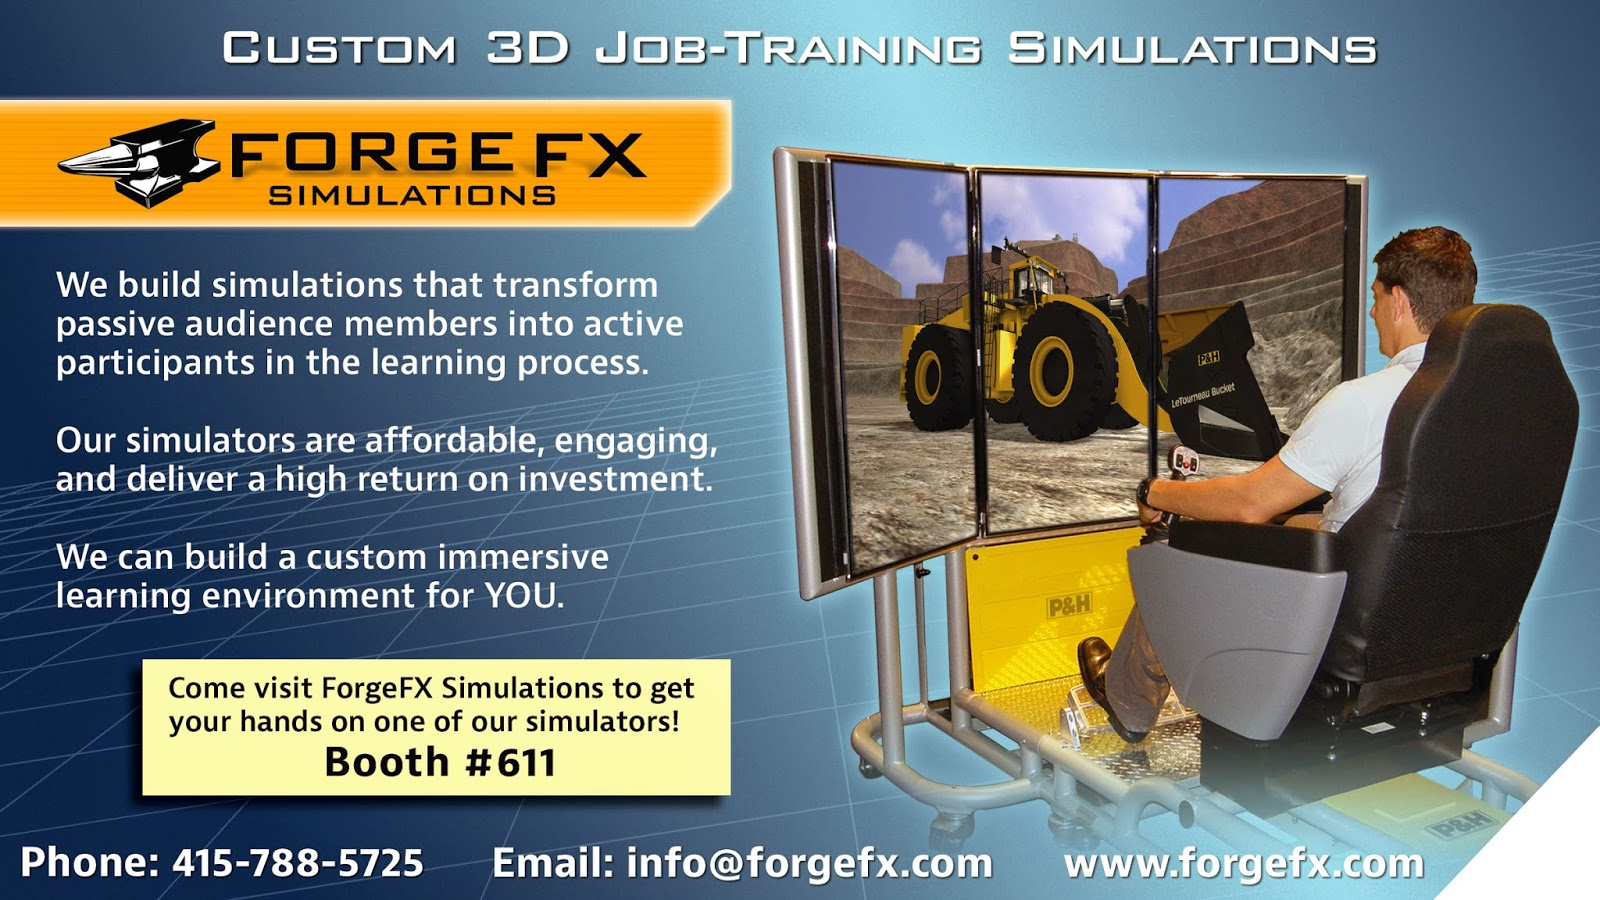 ForgeFX Custom 3D Job-Training Simulations